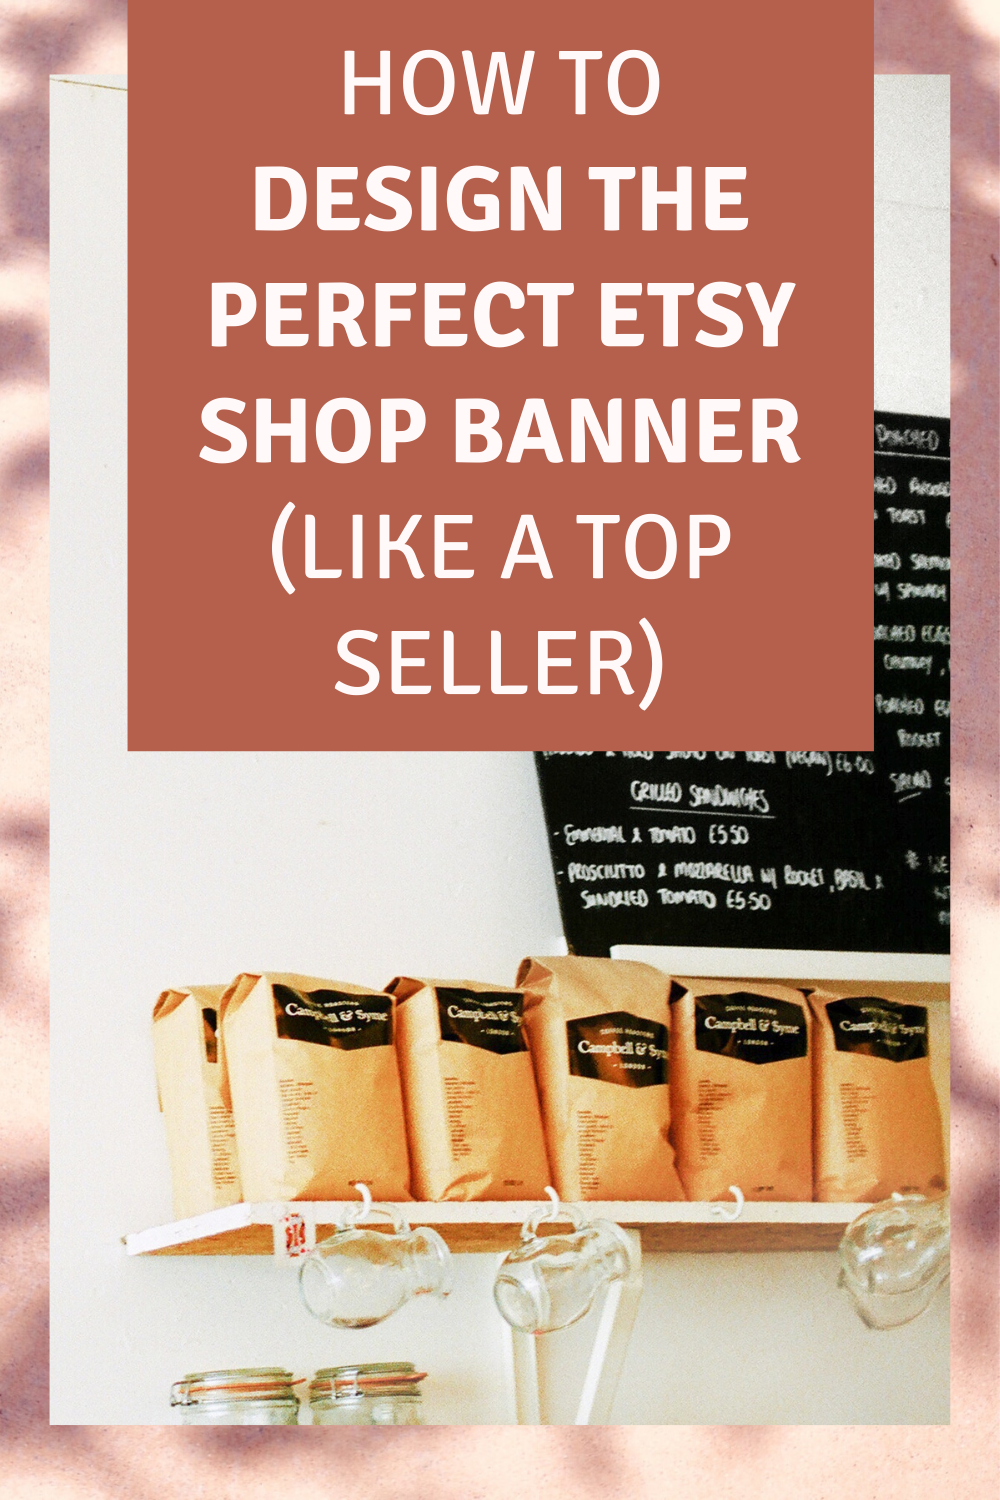 How to Design the Perfect Etsy Shop Banner